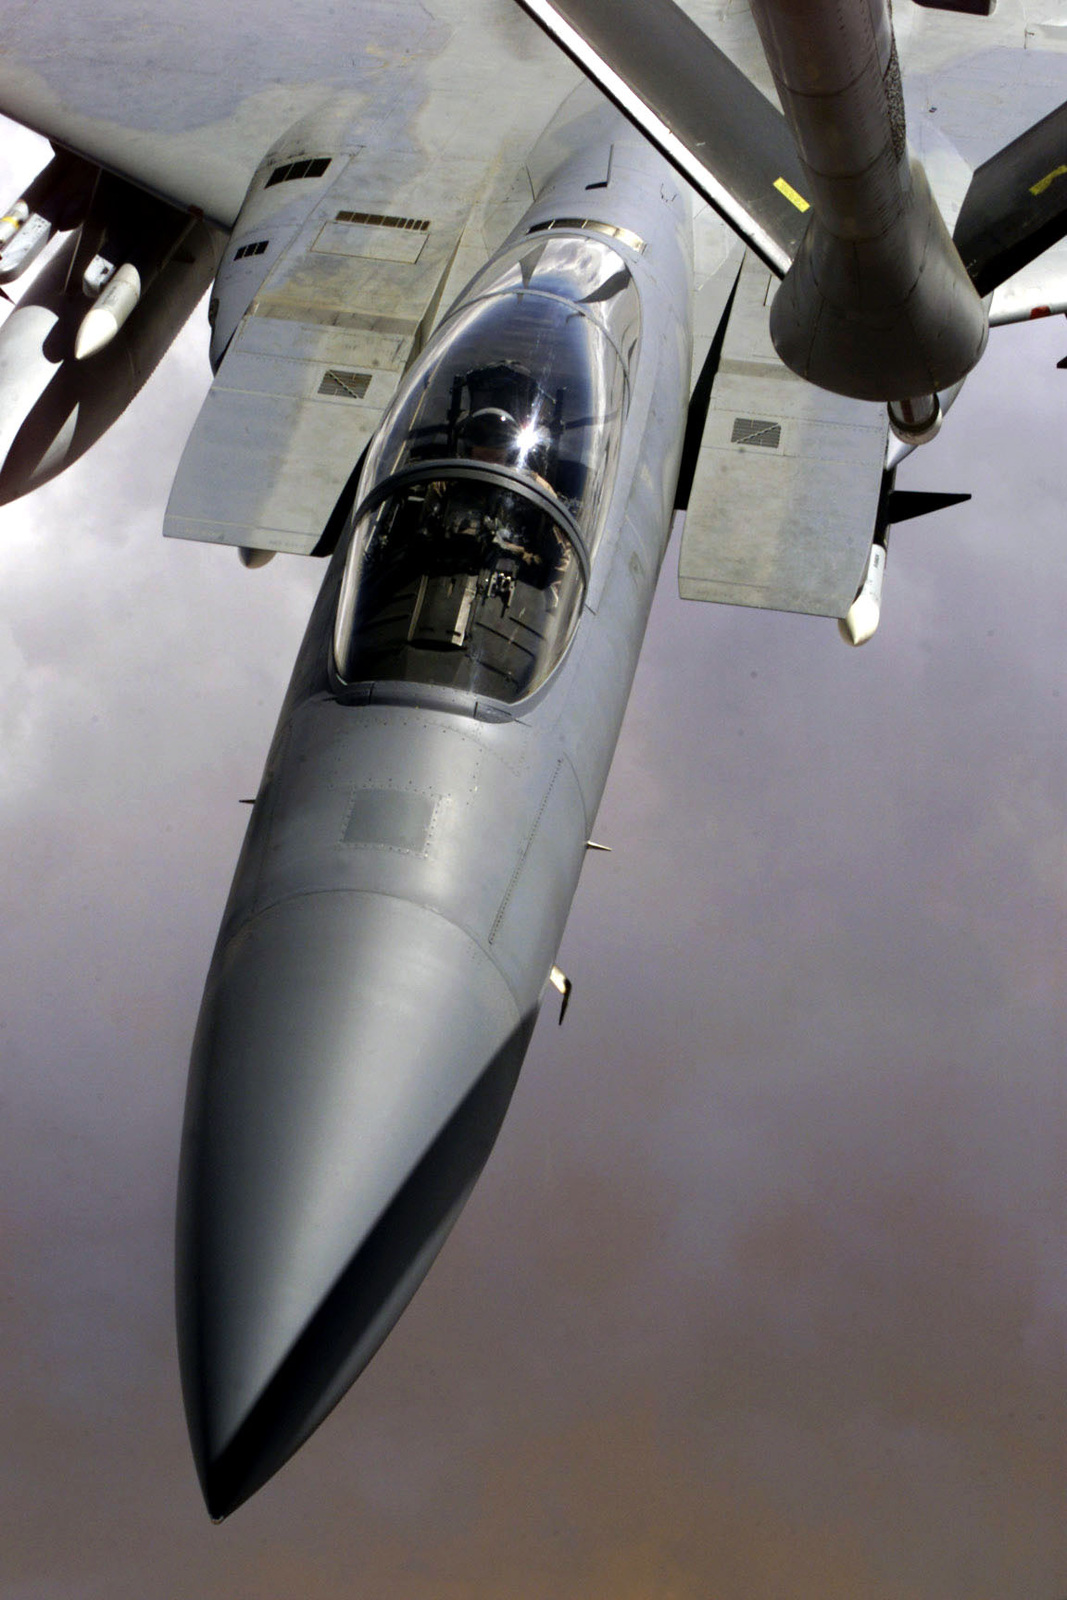 An F-15 Eagle aircraft refuels from a KC-135 Stratotanker (not shown) over Saudi Arabia. The F-15 is part of the coalition forces of the 363rd Air Expeditionary Wing who enforce the no-fly and no-drive zone in Southern Iraq to protect and defend against Iraqi aggression in support of Operation SOUTHERN WATCH